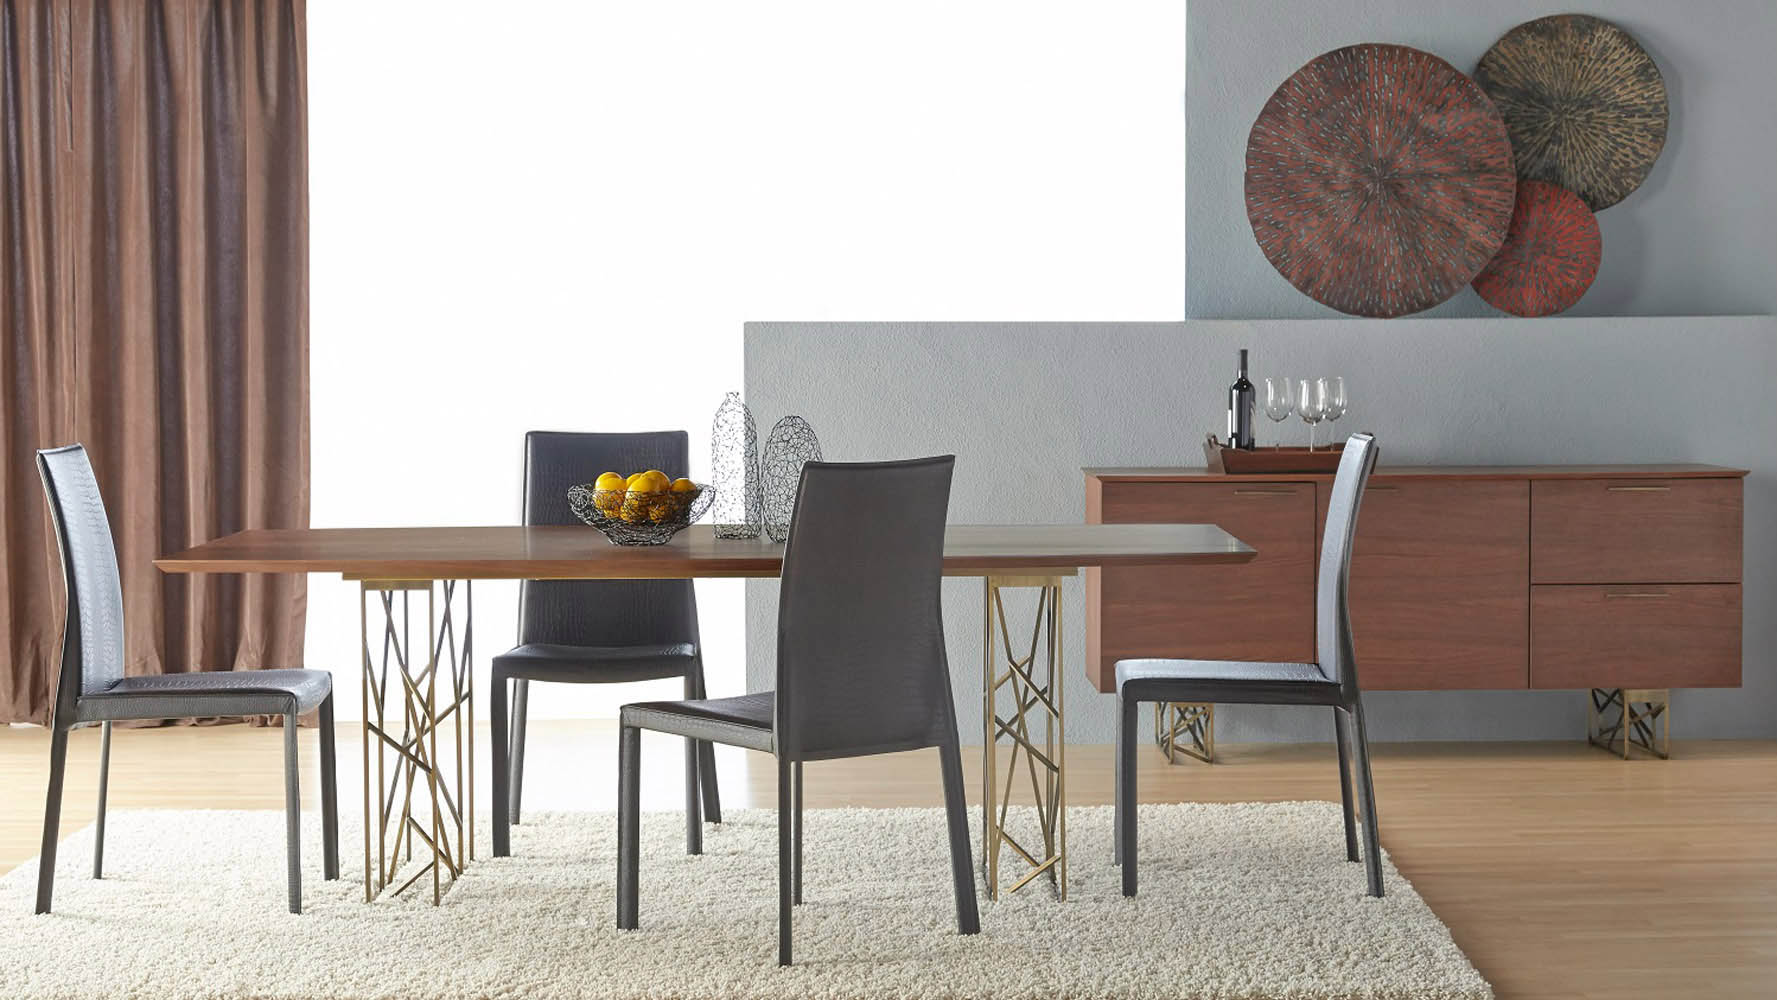 Exceptional Dining Table With Gold Legs Part - 7: Modern Decca Dining Table Dark Walnut Antique Gold Legs | Zuri Furniture